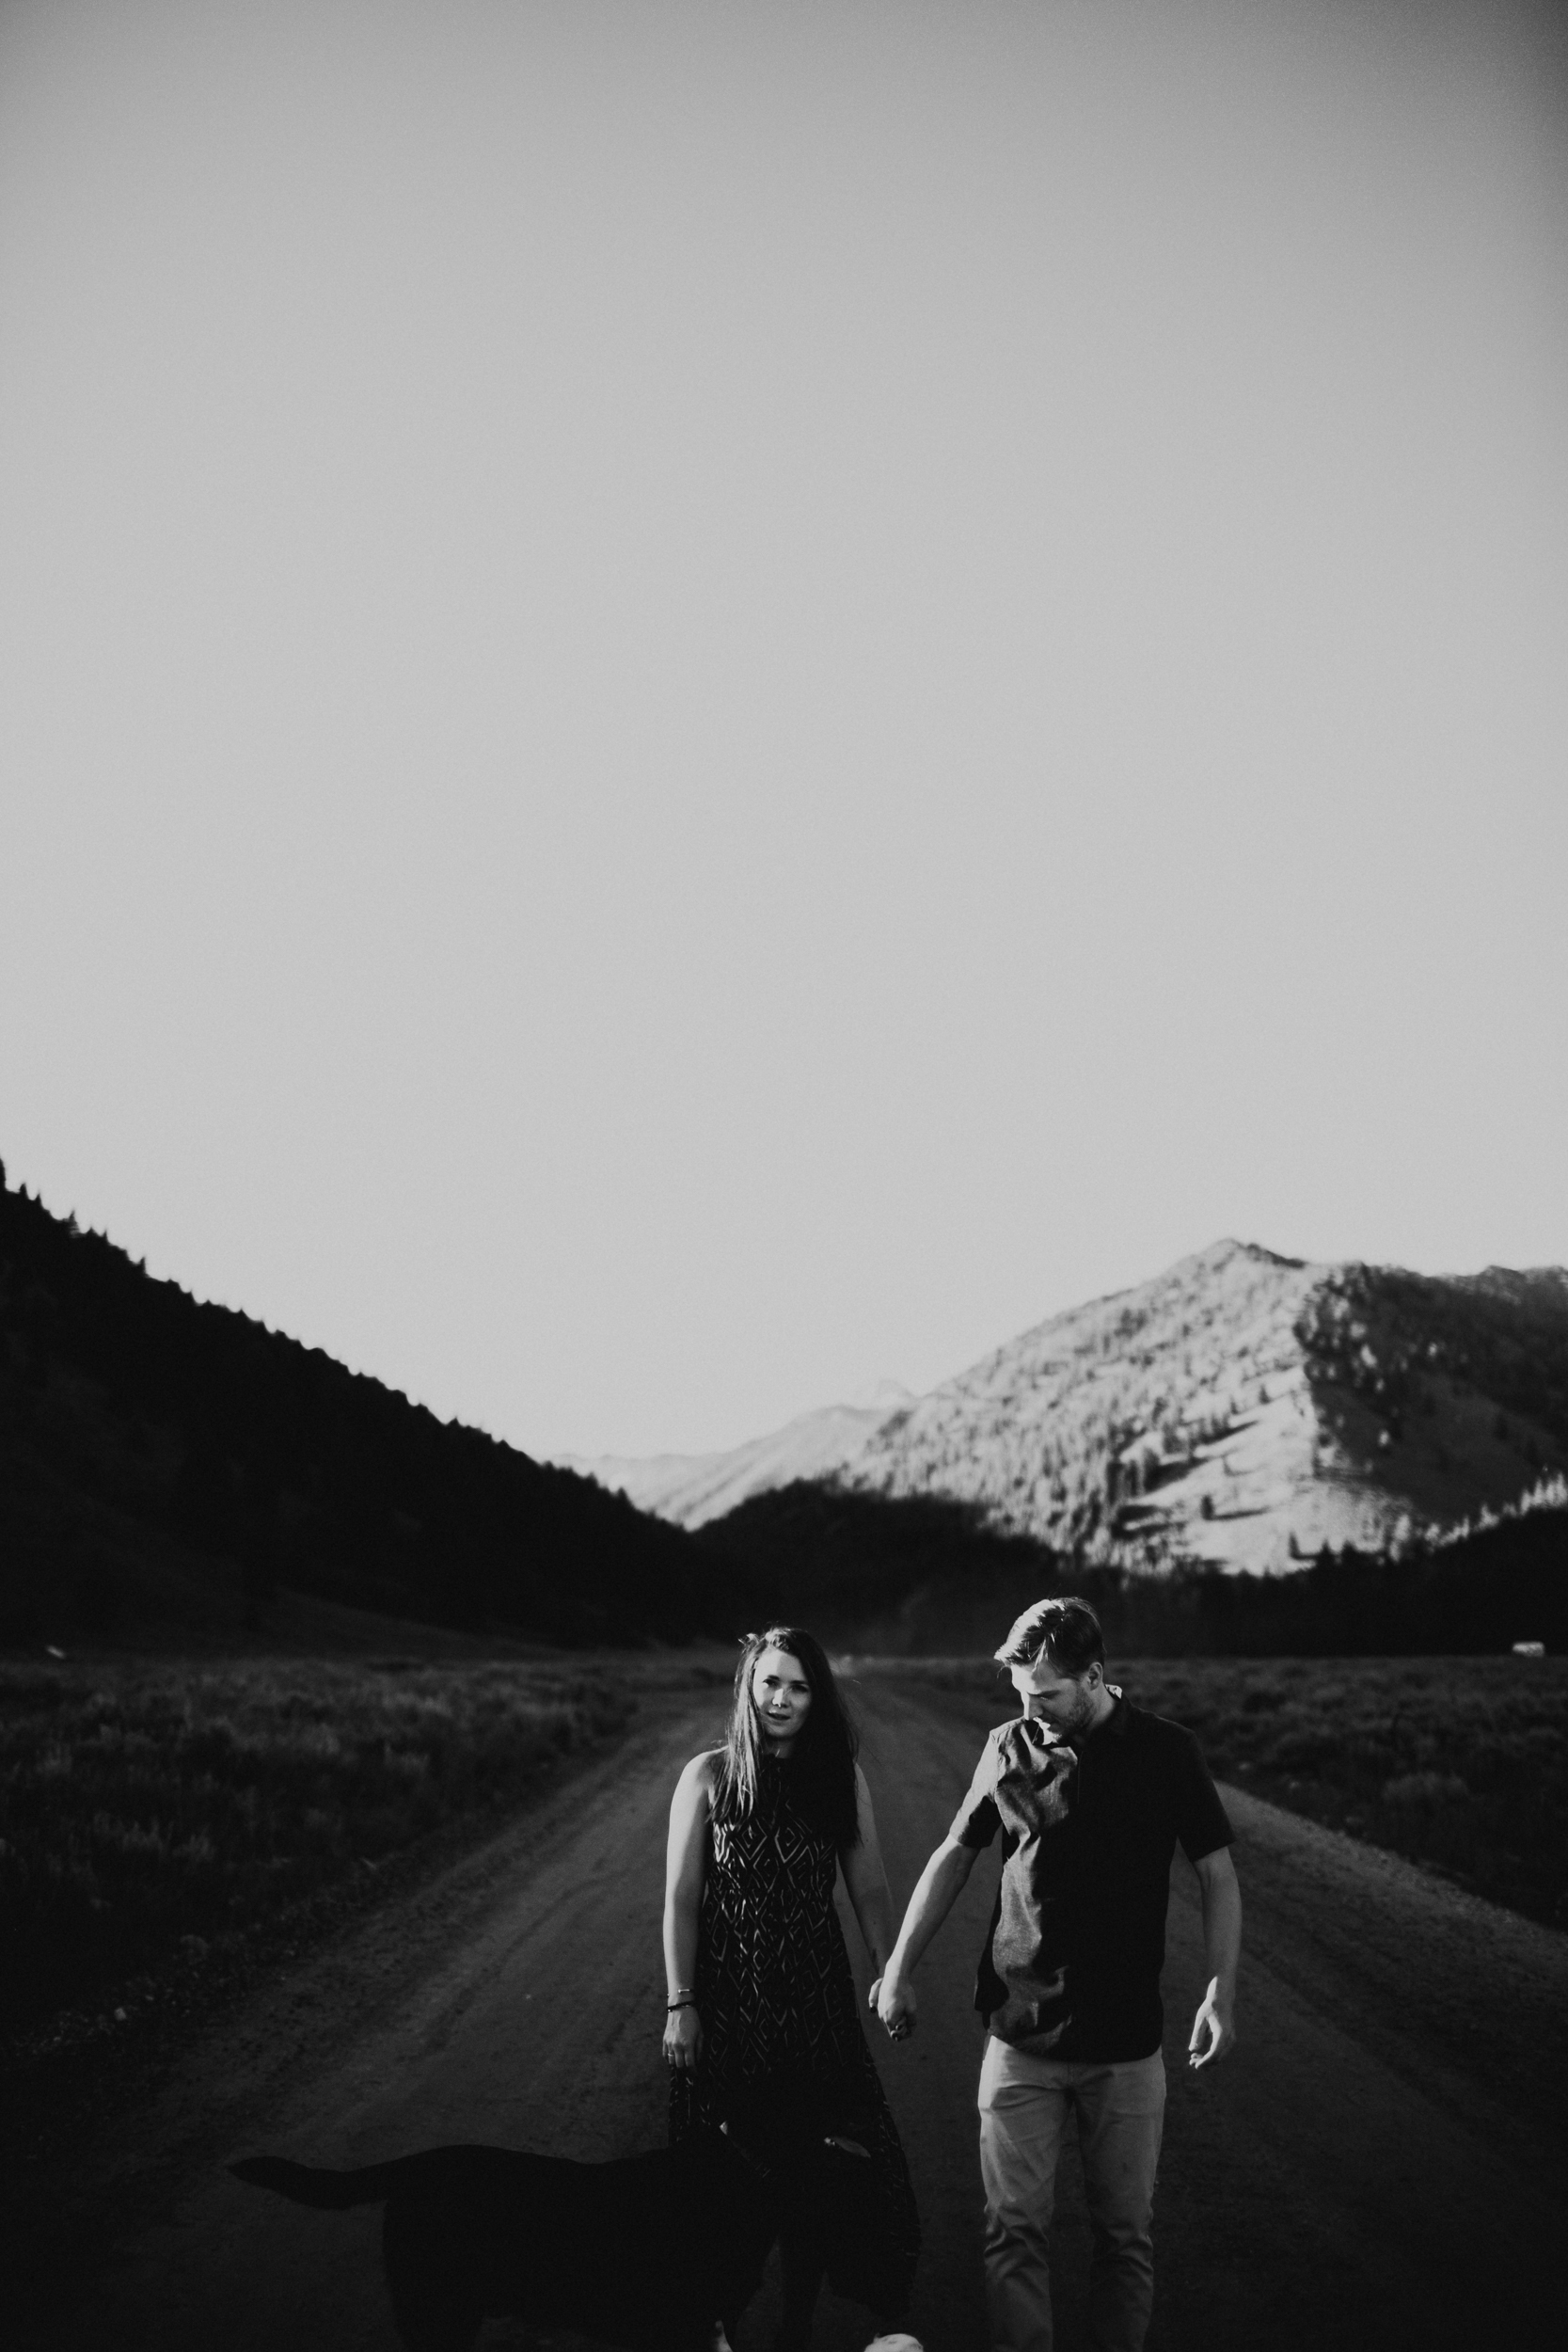 sun_valley_engagement_christinemariephoto-8.jpg